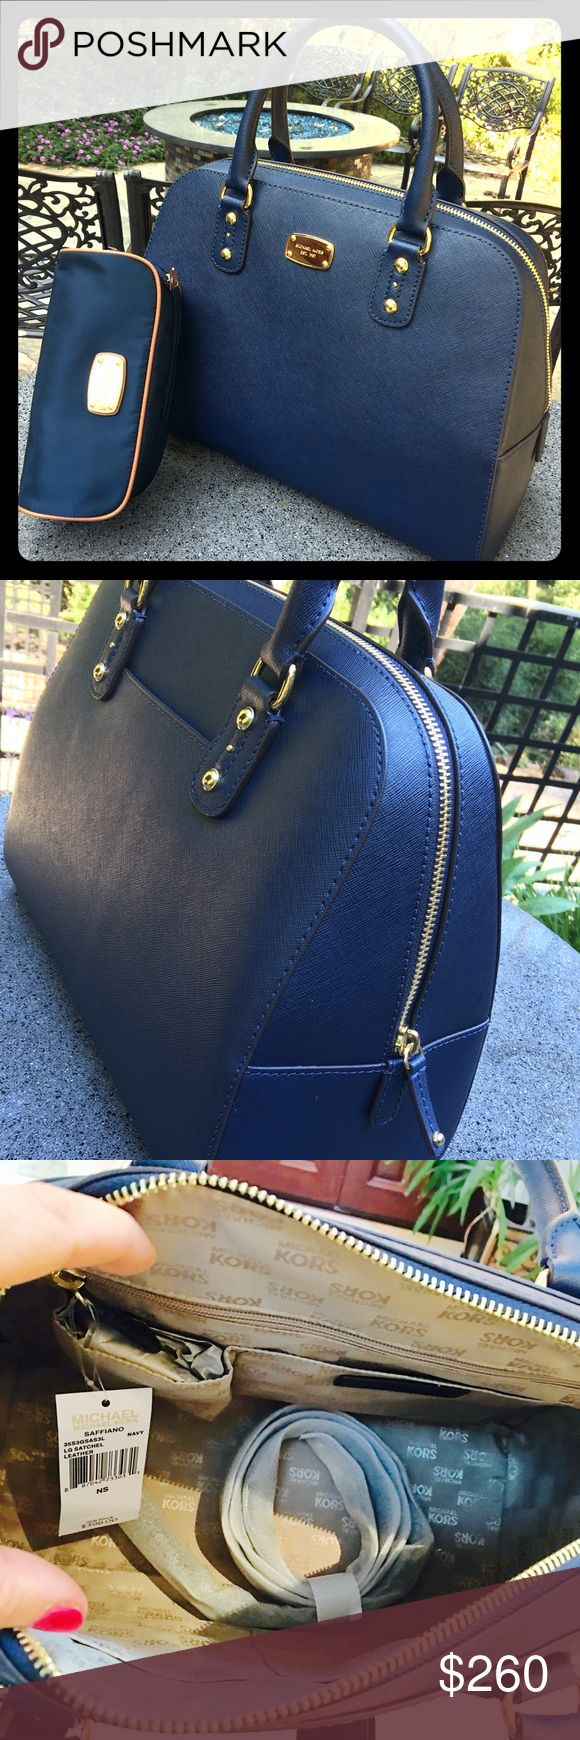 """💙Navy Blue MK purse ONLY💙 Michael KORS GORGEOUS Navy Blue satchel. Brand New with tags still on☺️👍 has light gold fixtures and ONE large open compartment. Comes with shoulder strap. Retail is $398 i'm selling for $260 or closest offer🎉🎈😘❤️☺️👍 please go through """"offer"""" button. Michael Kors Bags Satchels"""